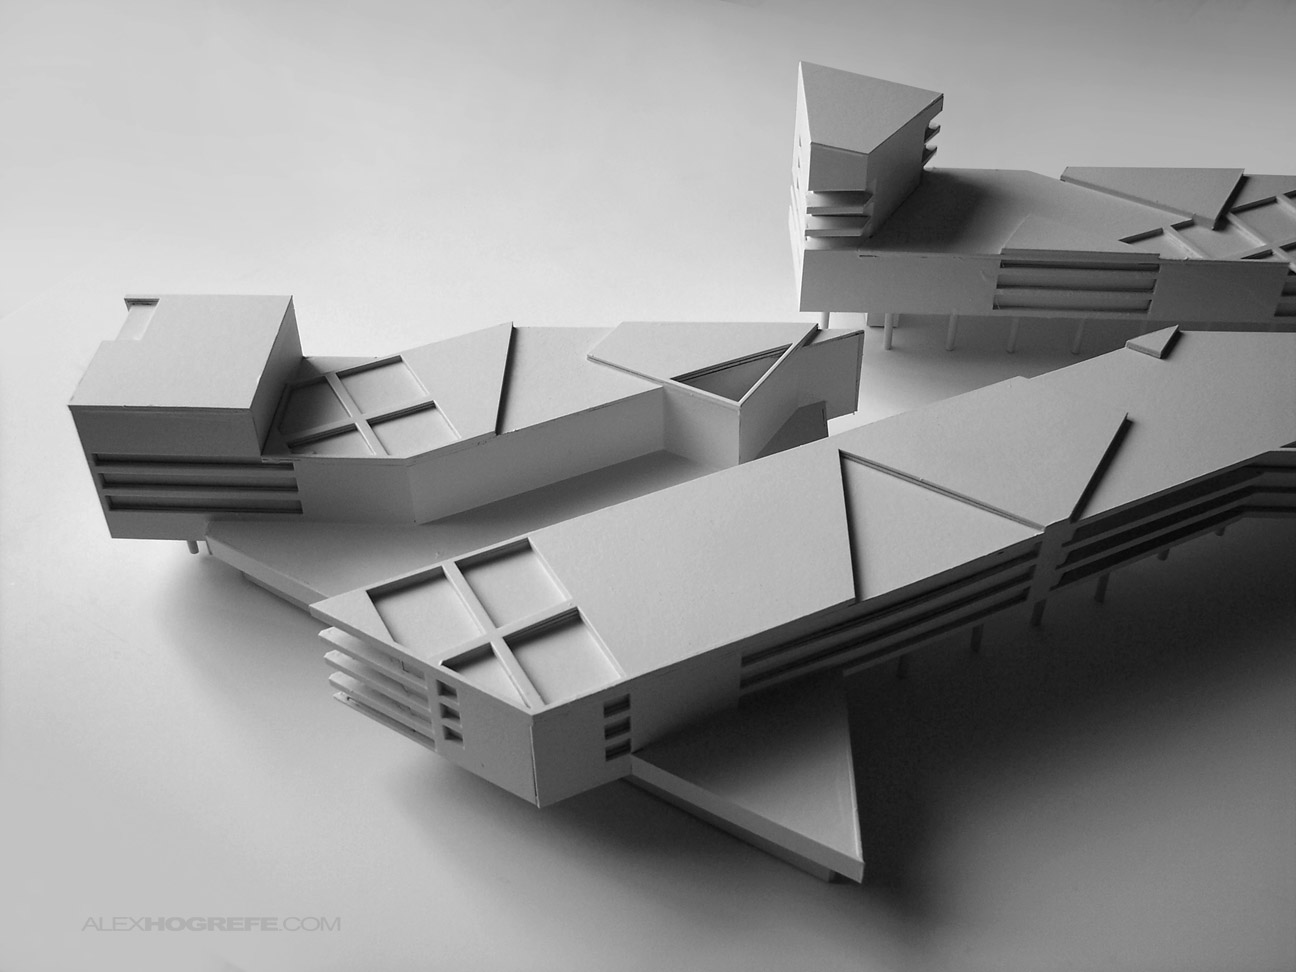 urban_design_model_alex_hogrefe copy